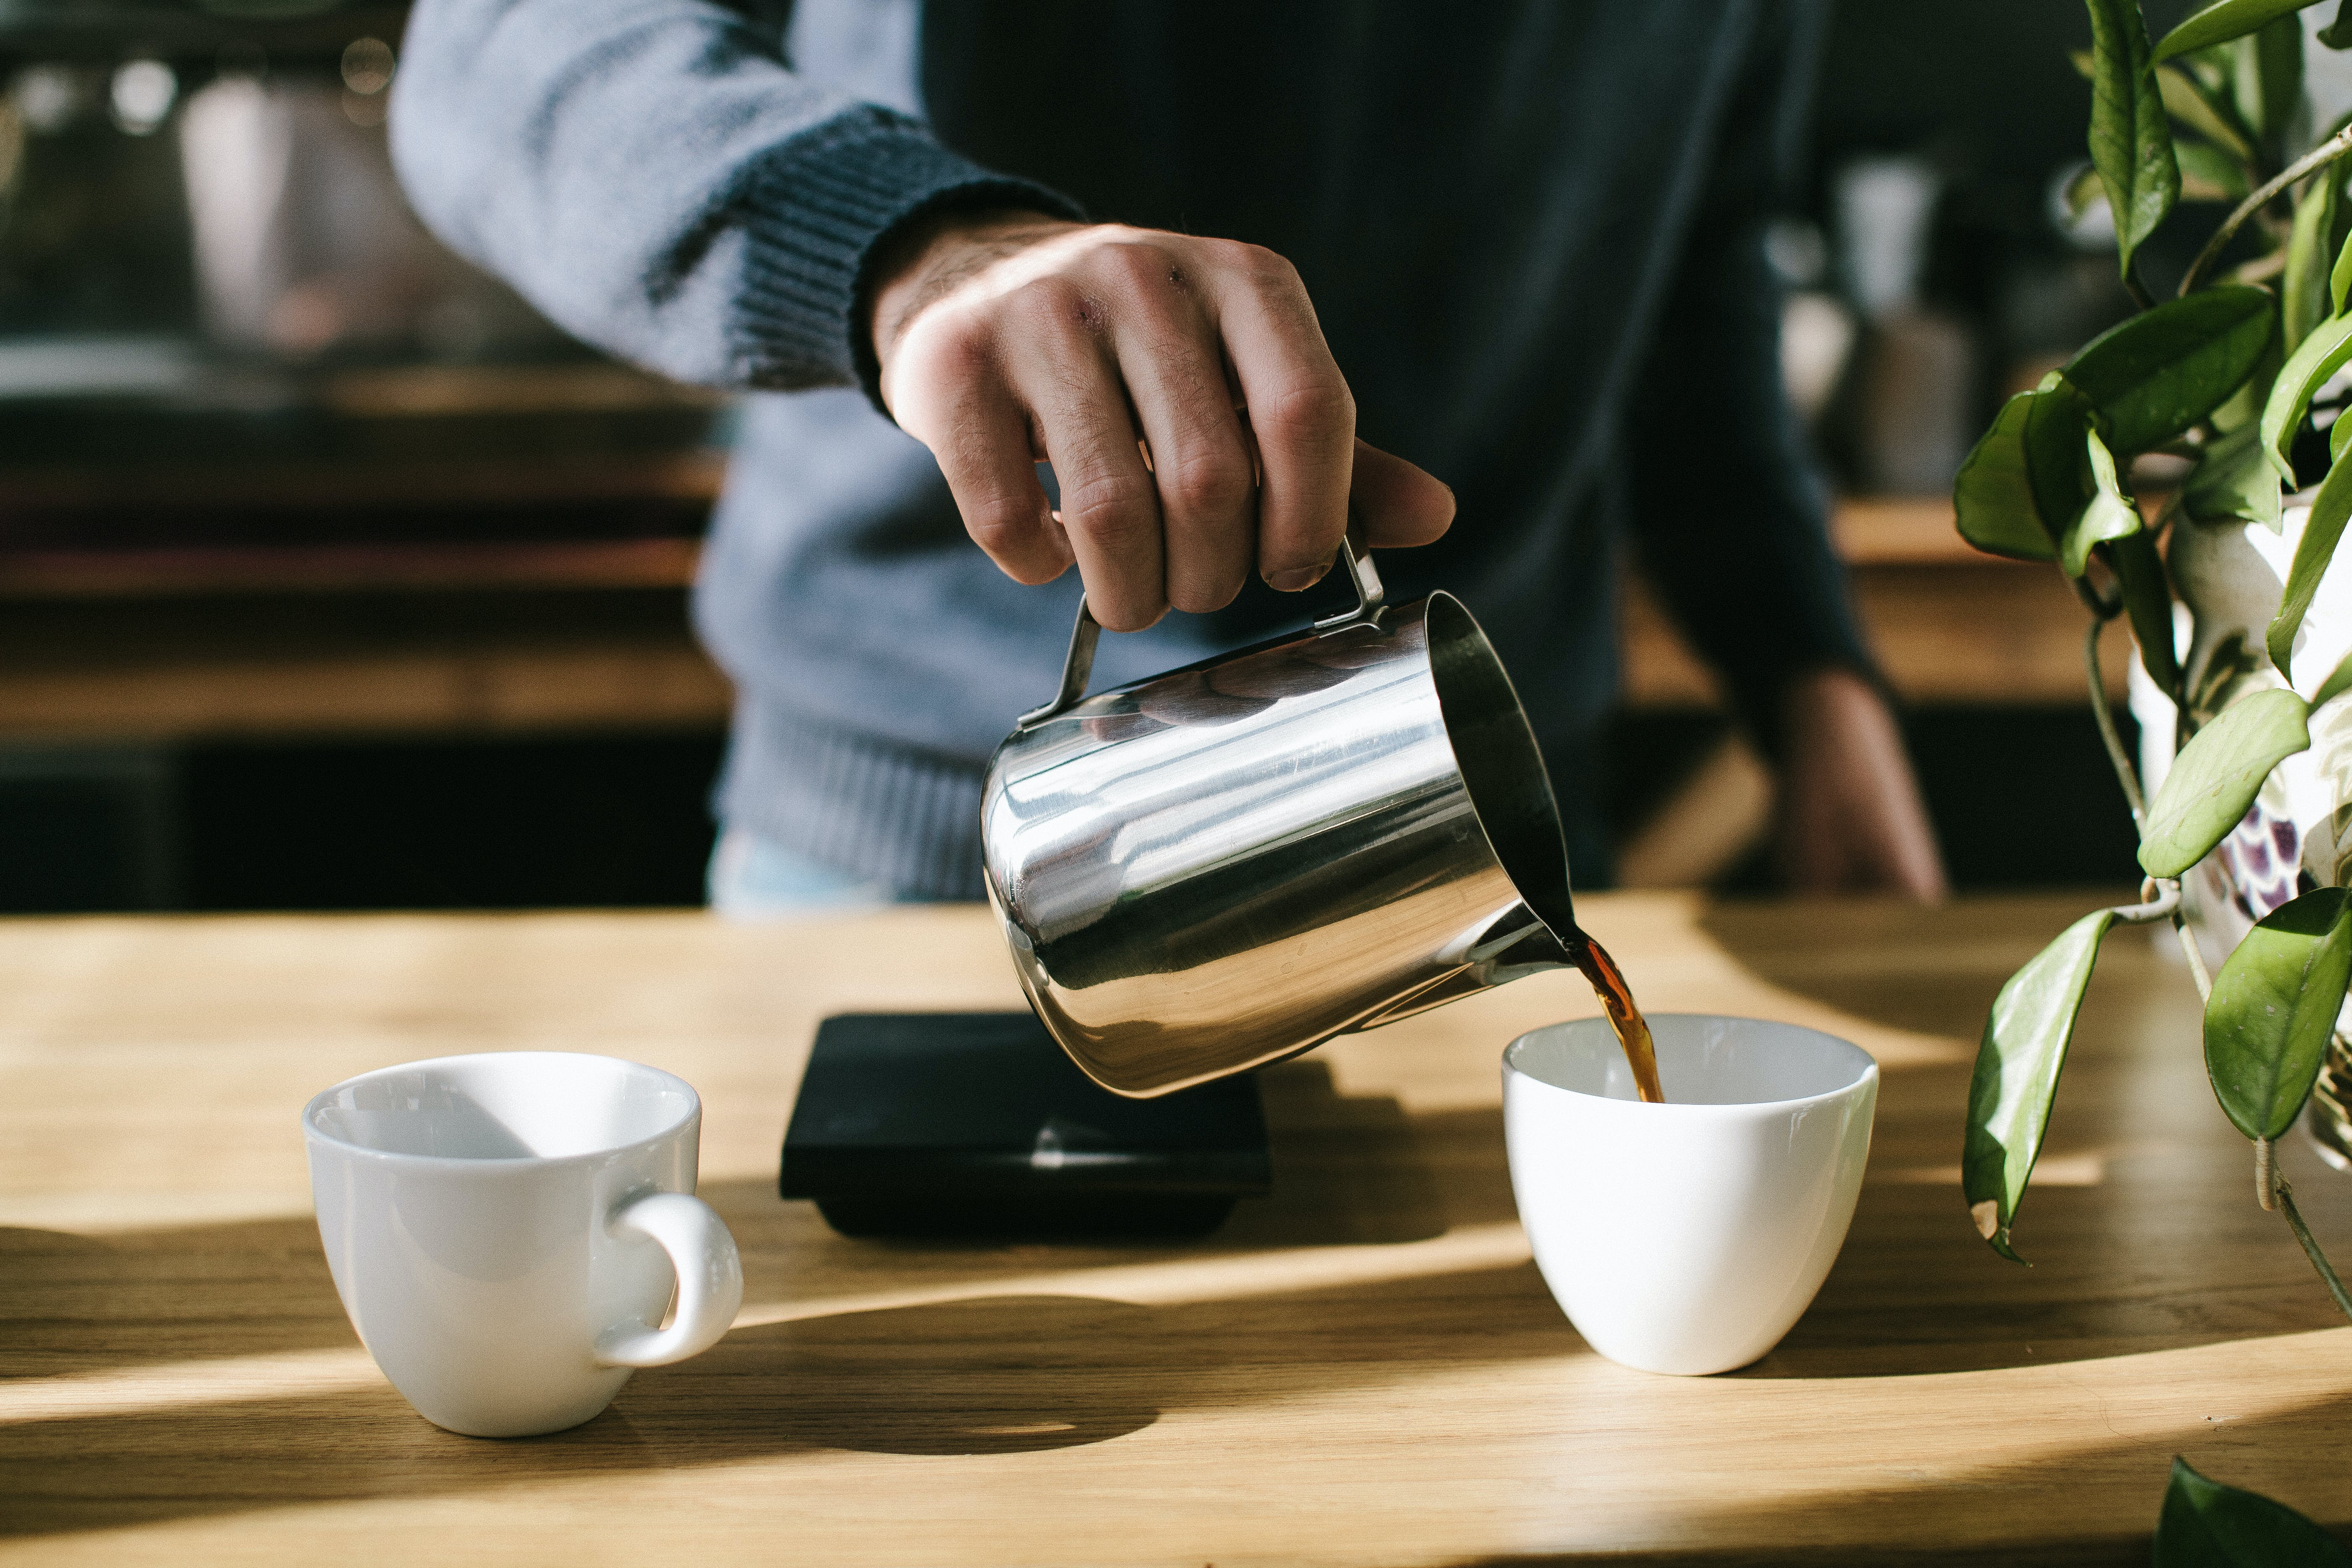 Person Pouring Coffee in White Ceramic Mug